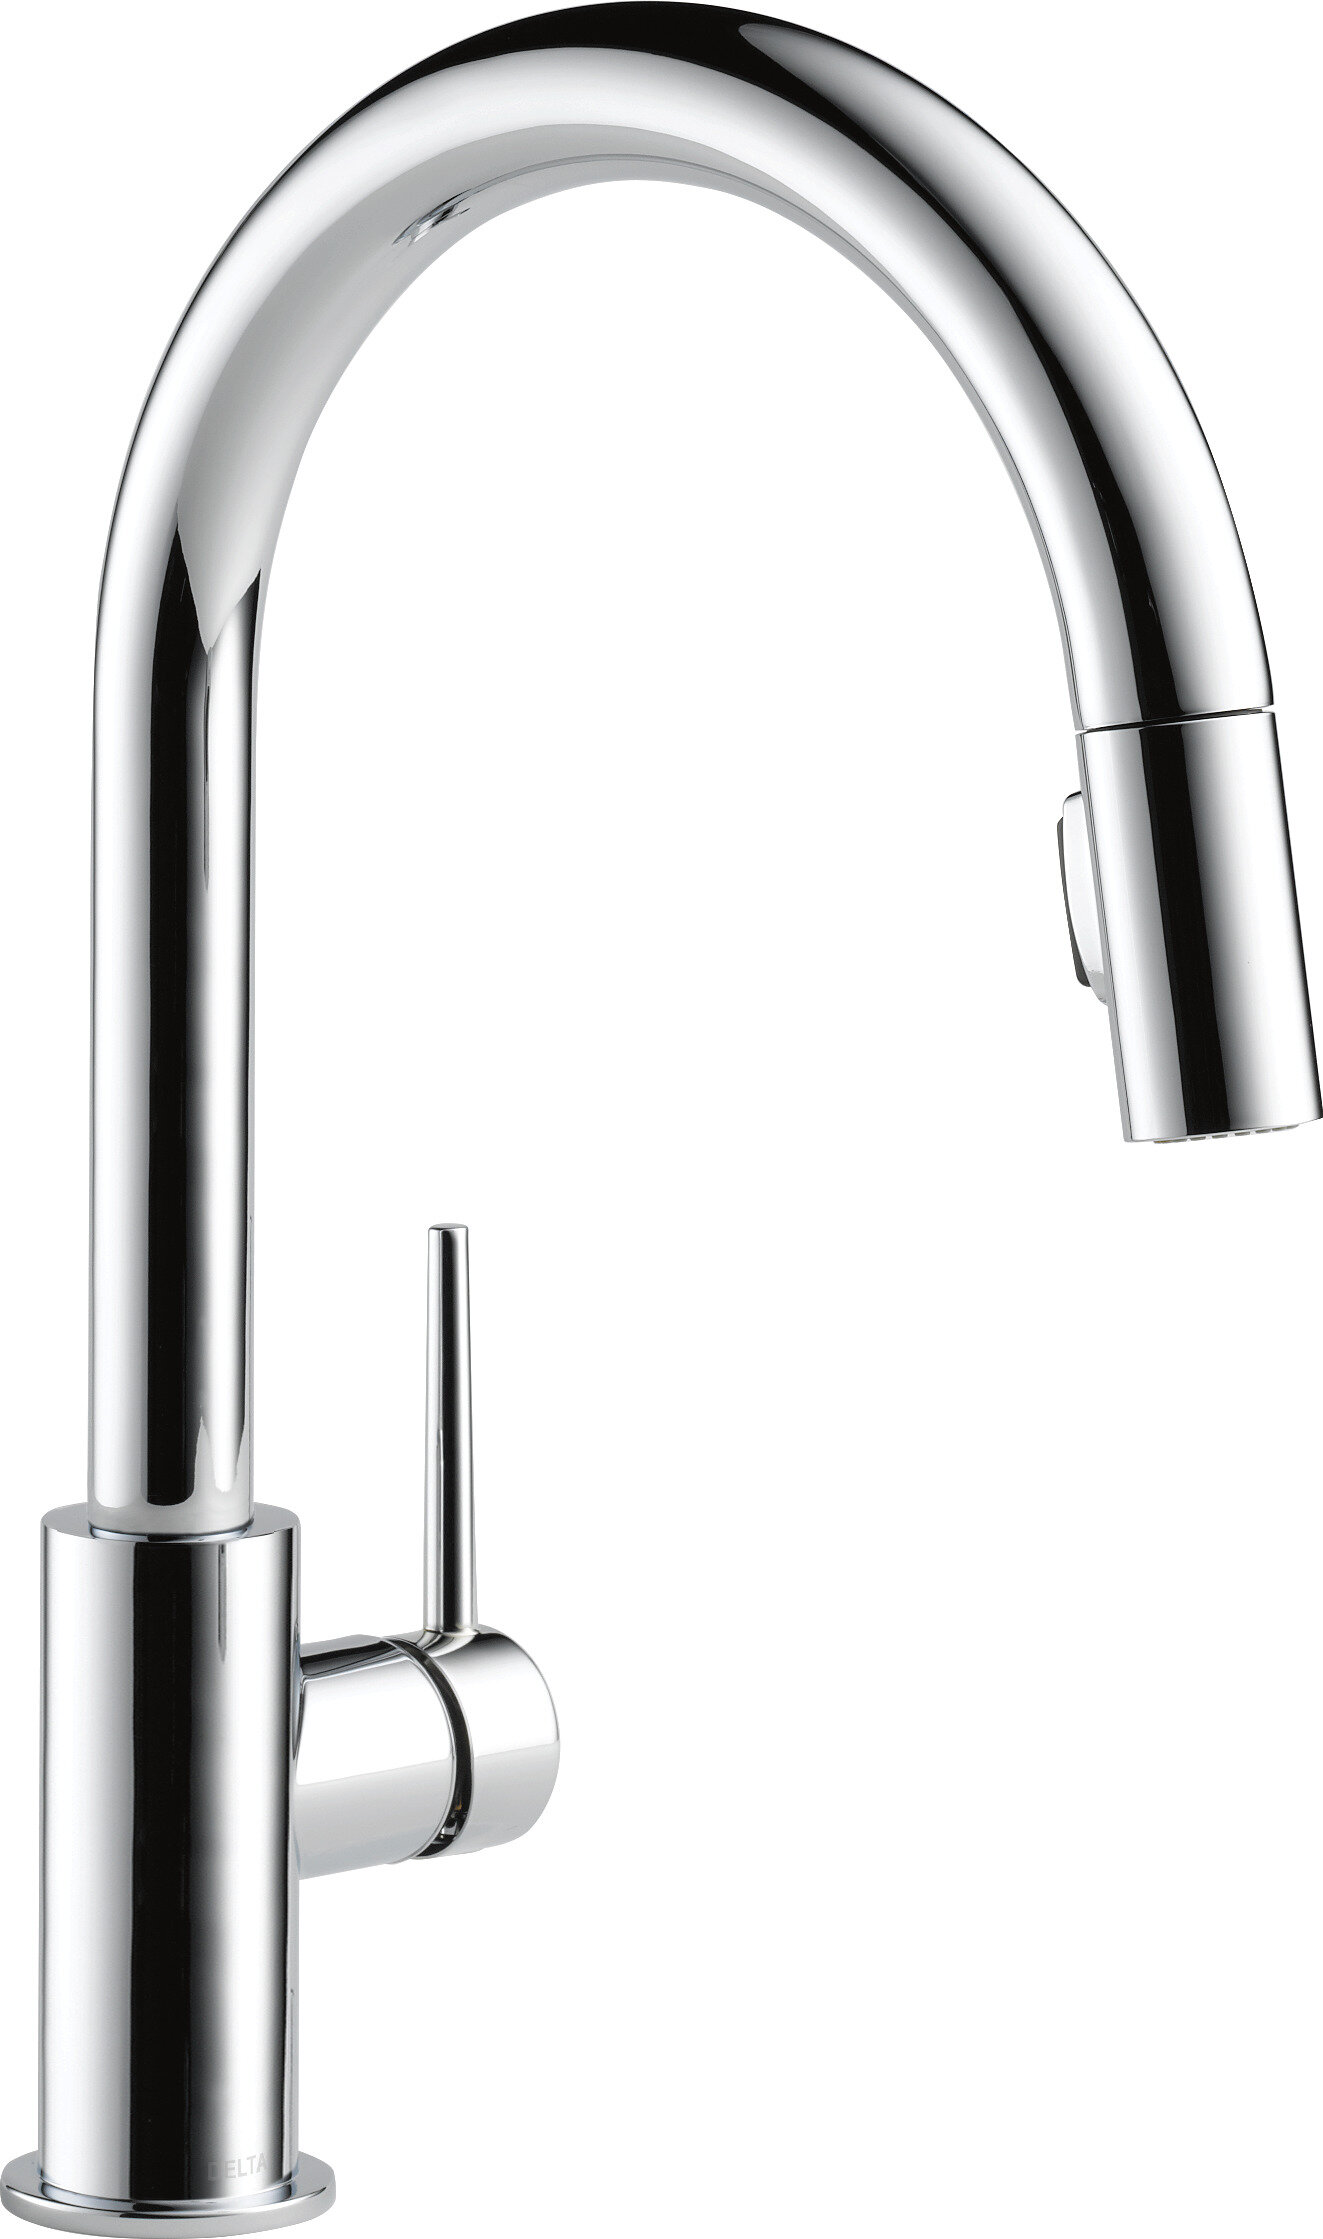 dimensiva by faucet senso solenta kitchen blanco